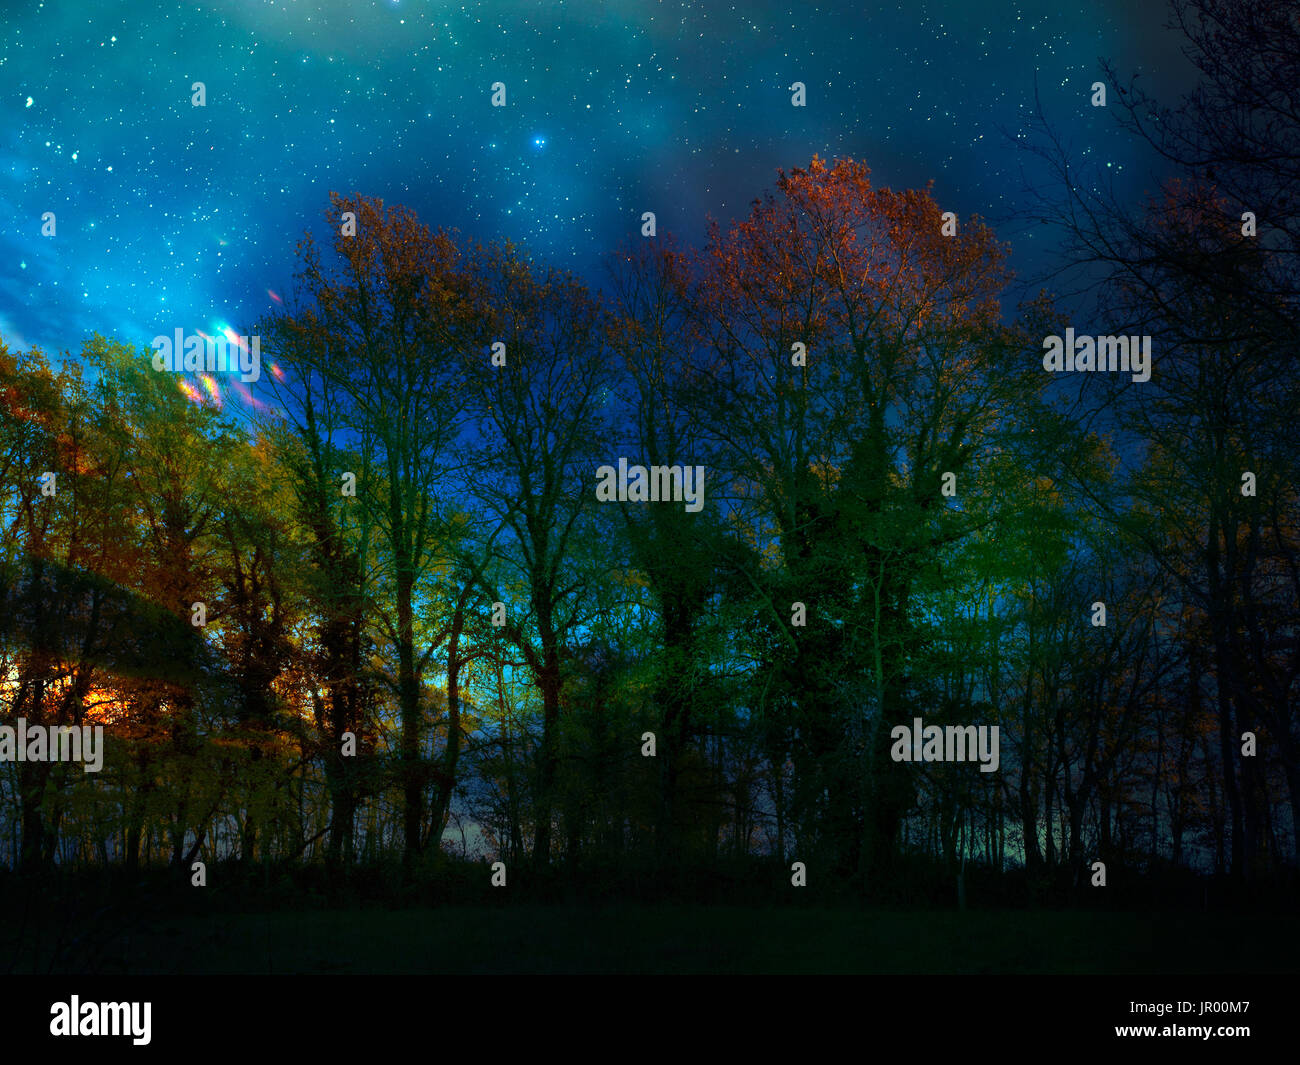 Strange lights in the forest. UFO? - Stock Image